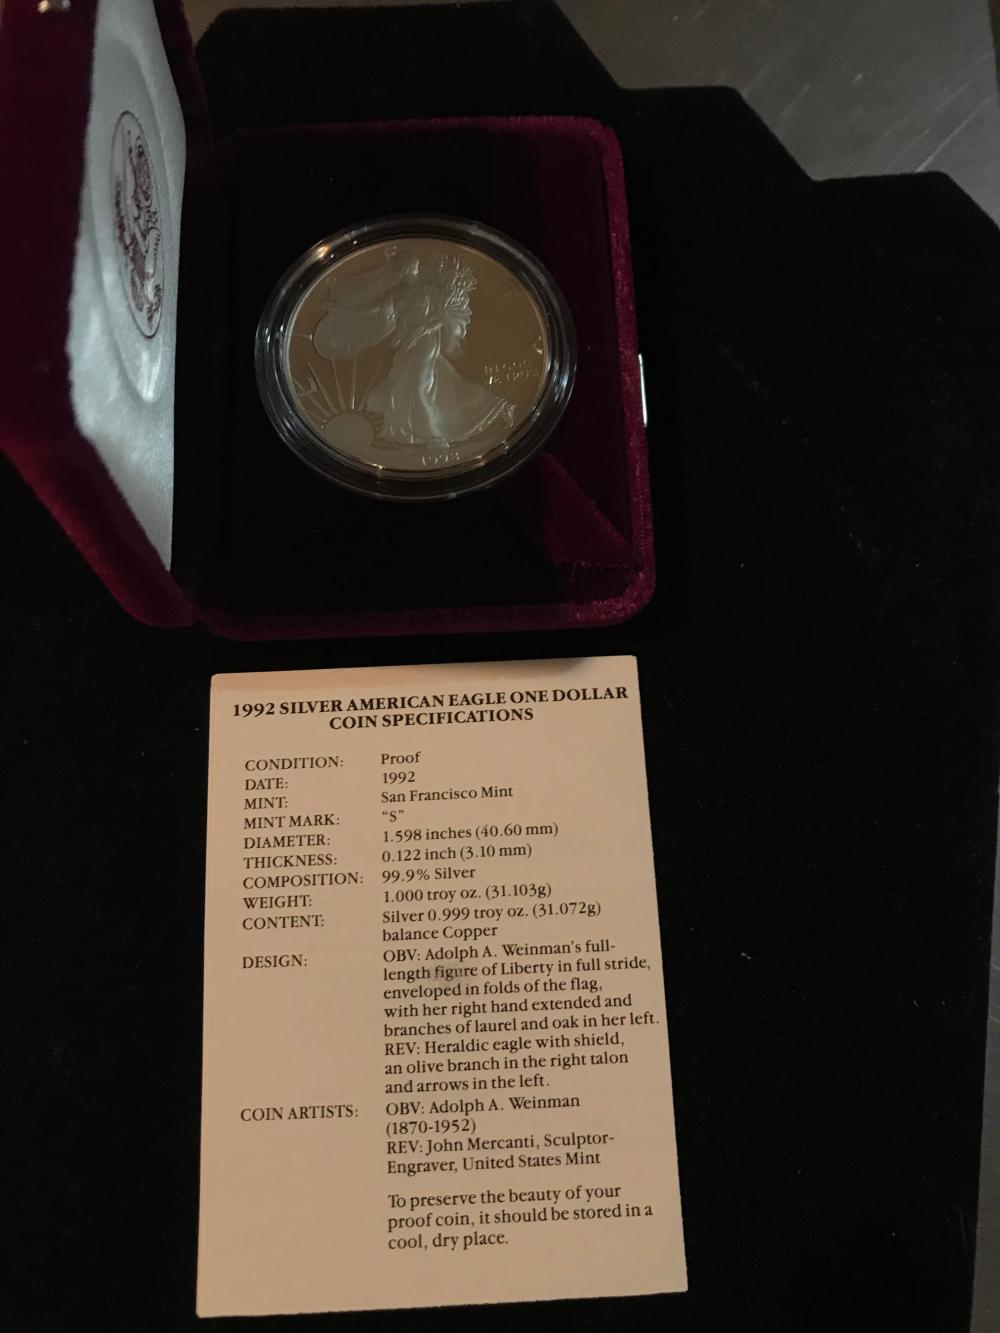 1992 silver American eagle one dollar coin proof